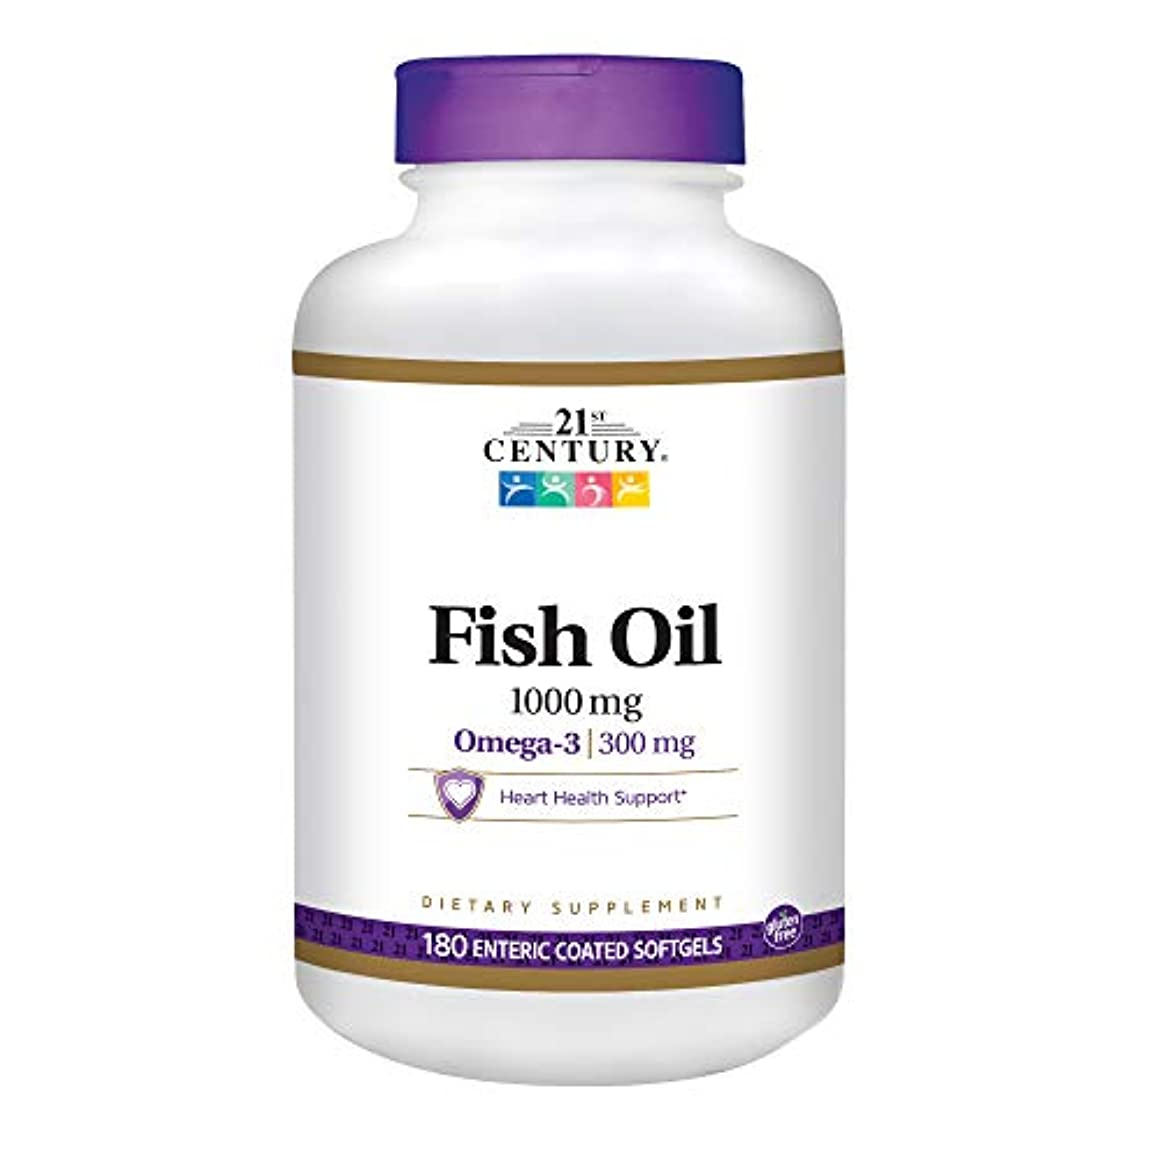 南アメリカパステル用量21st Century Health Care, Fish Oil, 1000 mg, 180 Enteric Coated Softgels